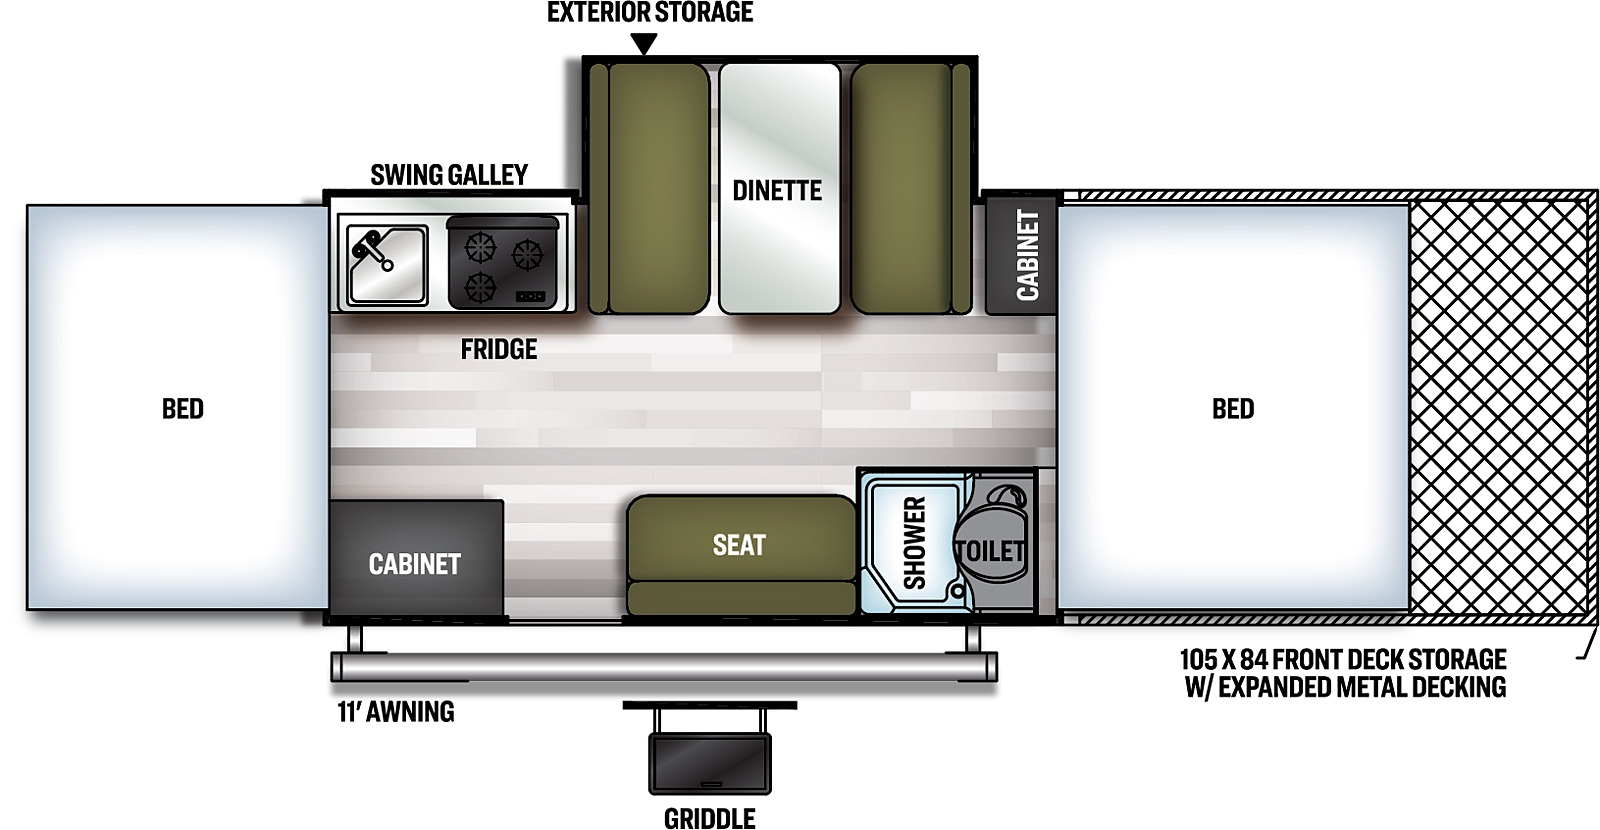 Forest River Flagstaff 28TSCSE floorplan  with space for two atvs